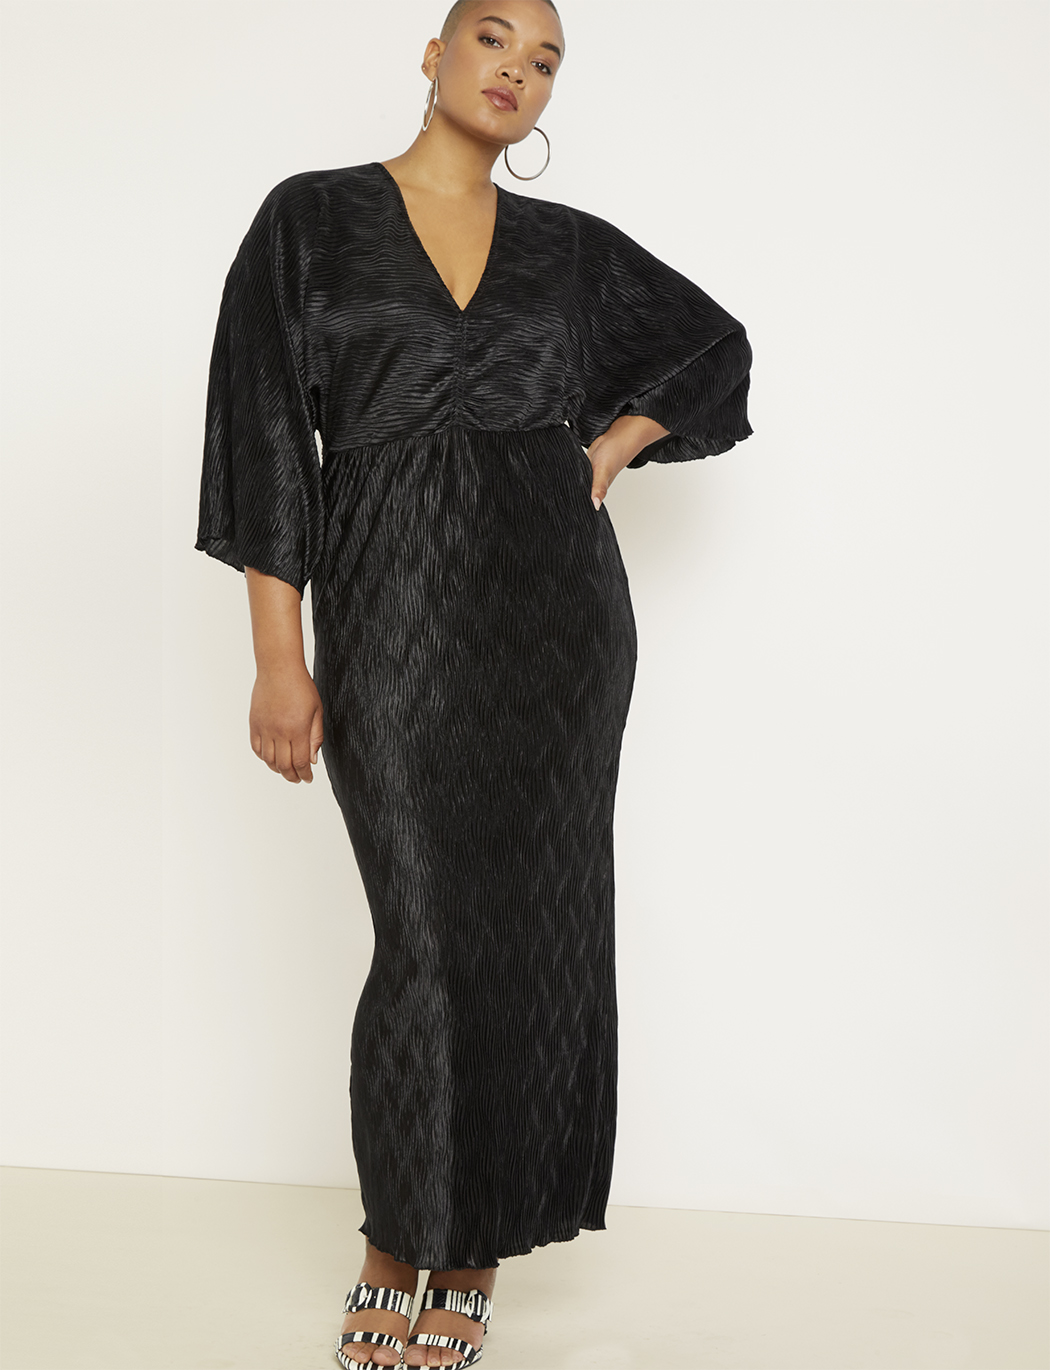 Kimono Sleeve Maxi Dress | Women\'s Plus Size Dresses | ELOQUII